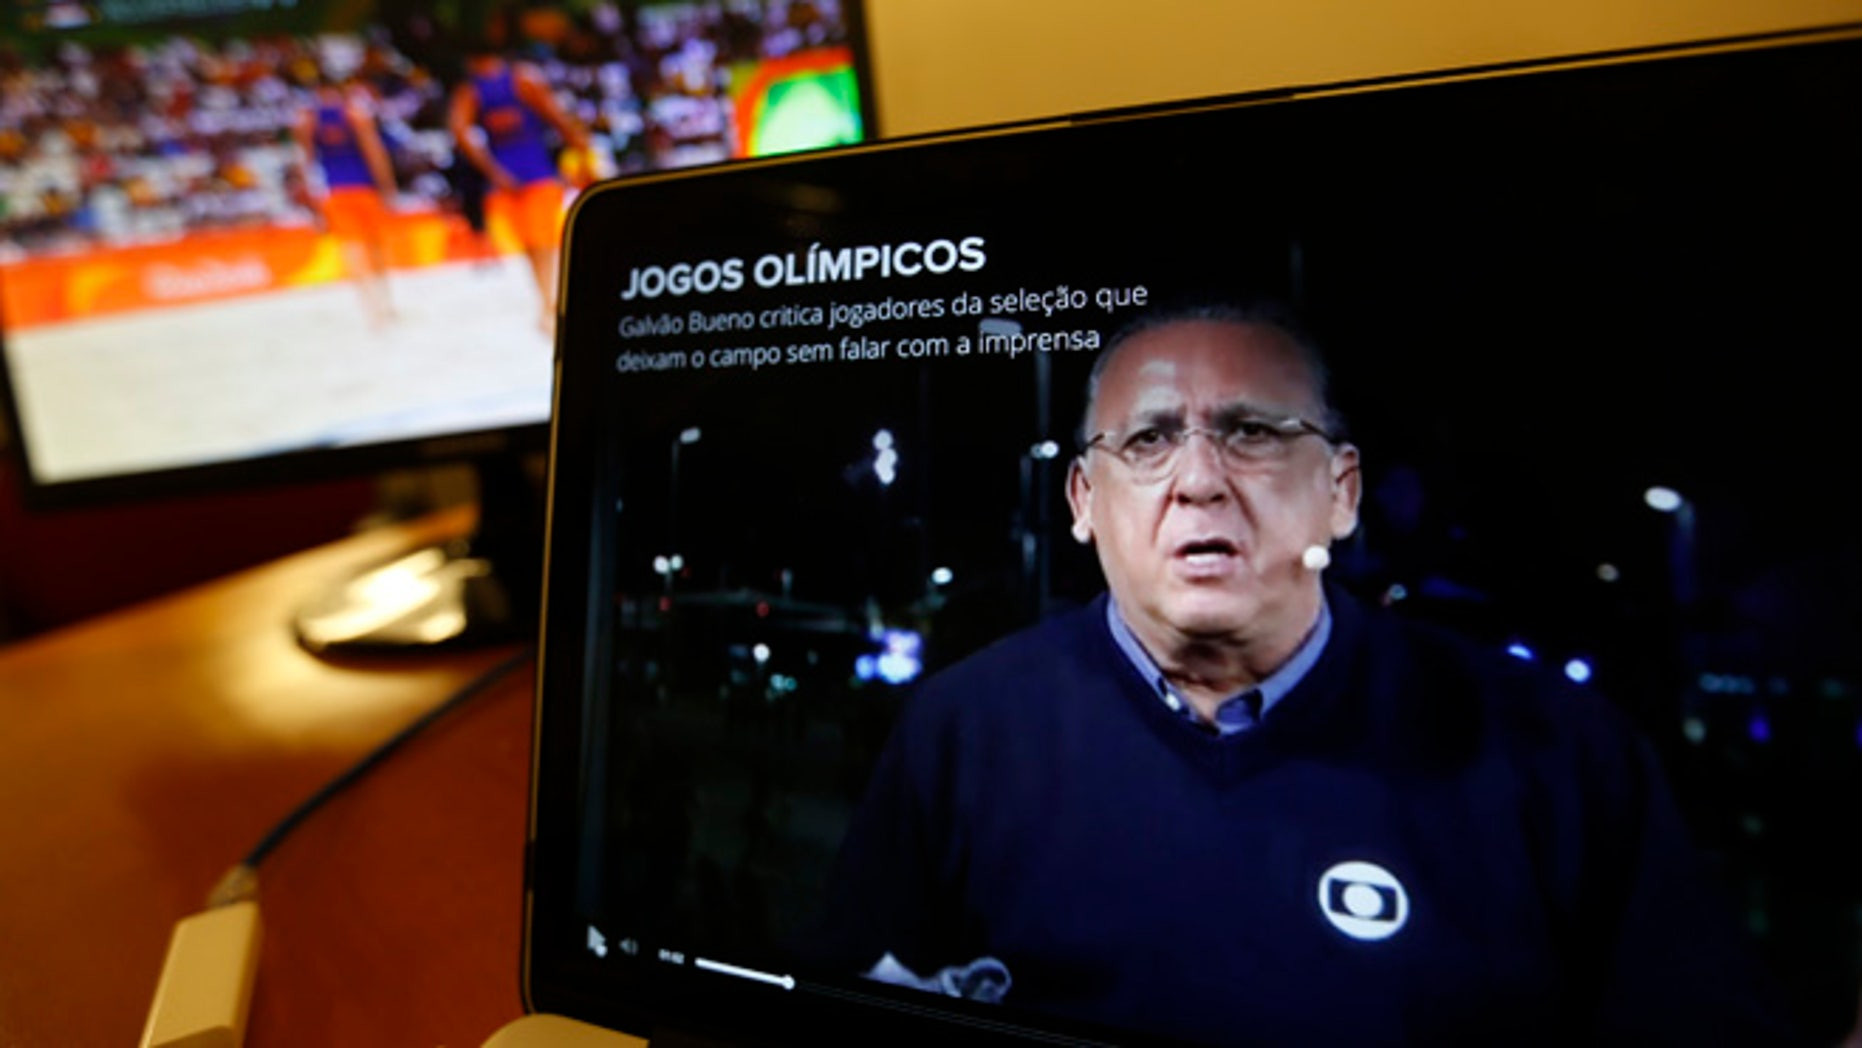 Carlos Eduardo dos Santos Galvao Bueno, chief sports commentator for Globo, is seen on a screen in Rio de Janeiro, Brazil, Monday, Aug. 15, 2016. When a BBC announcer suggested that the Brazilian broadcaster needed to shut up at the start of a swimming race at the Rio Olympics, he was voicing the feelings of many in the host country. Considered the Bob Costas of Brazil, Carlos Eduardo dos Santos Galvao Bueno, known here simply as Galvao, is a love-him-or-hate-him announcer who is the voice of Brazilian sports. His raucous, over-the-top style helps make big sporting events feel even bigger in Brazil. (AP Photo/Silvia Izquierdo)